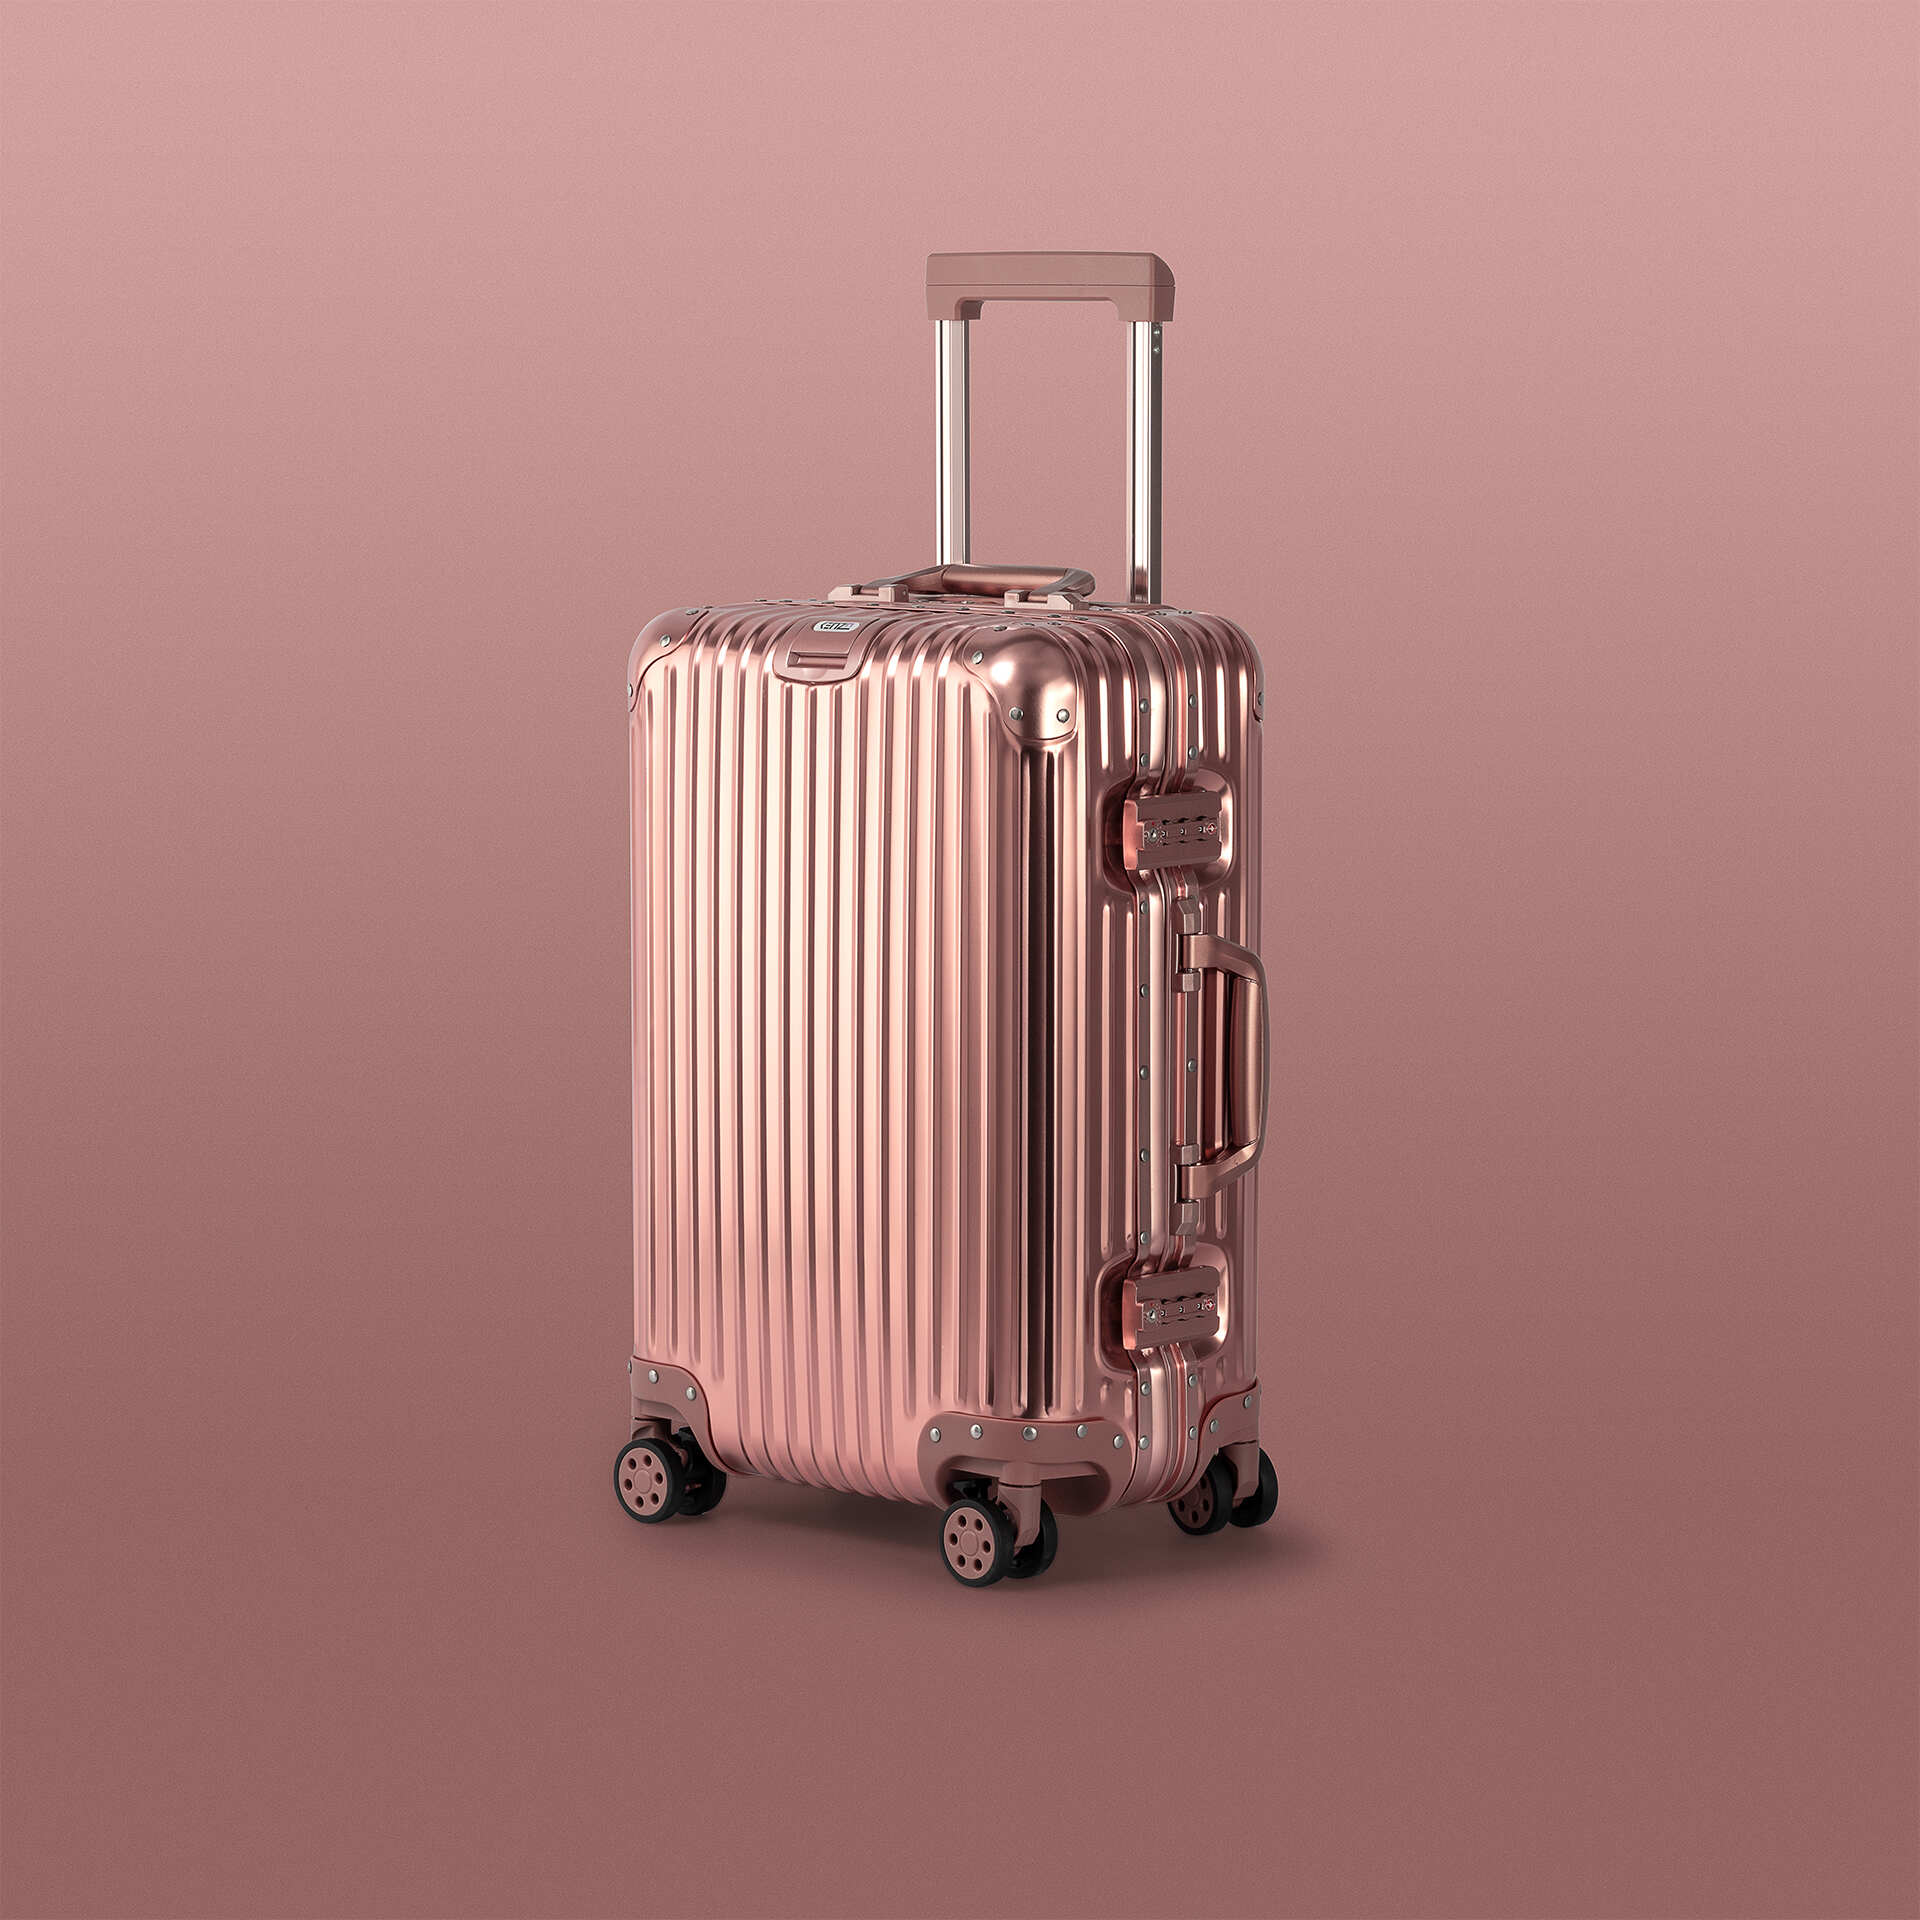 THE BEST LUGGAGE SETS FOR EASY TO BUY